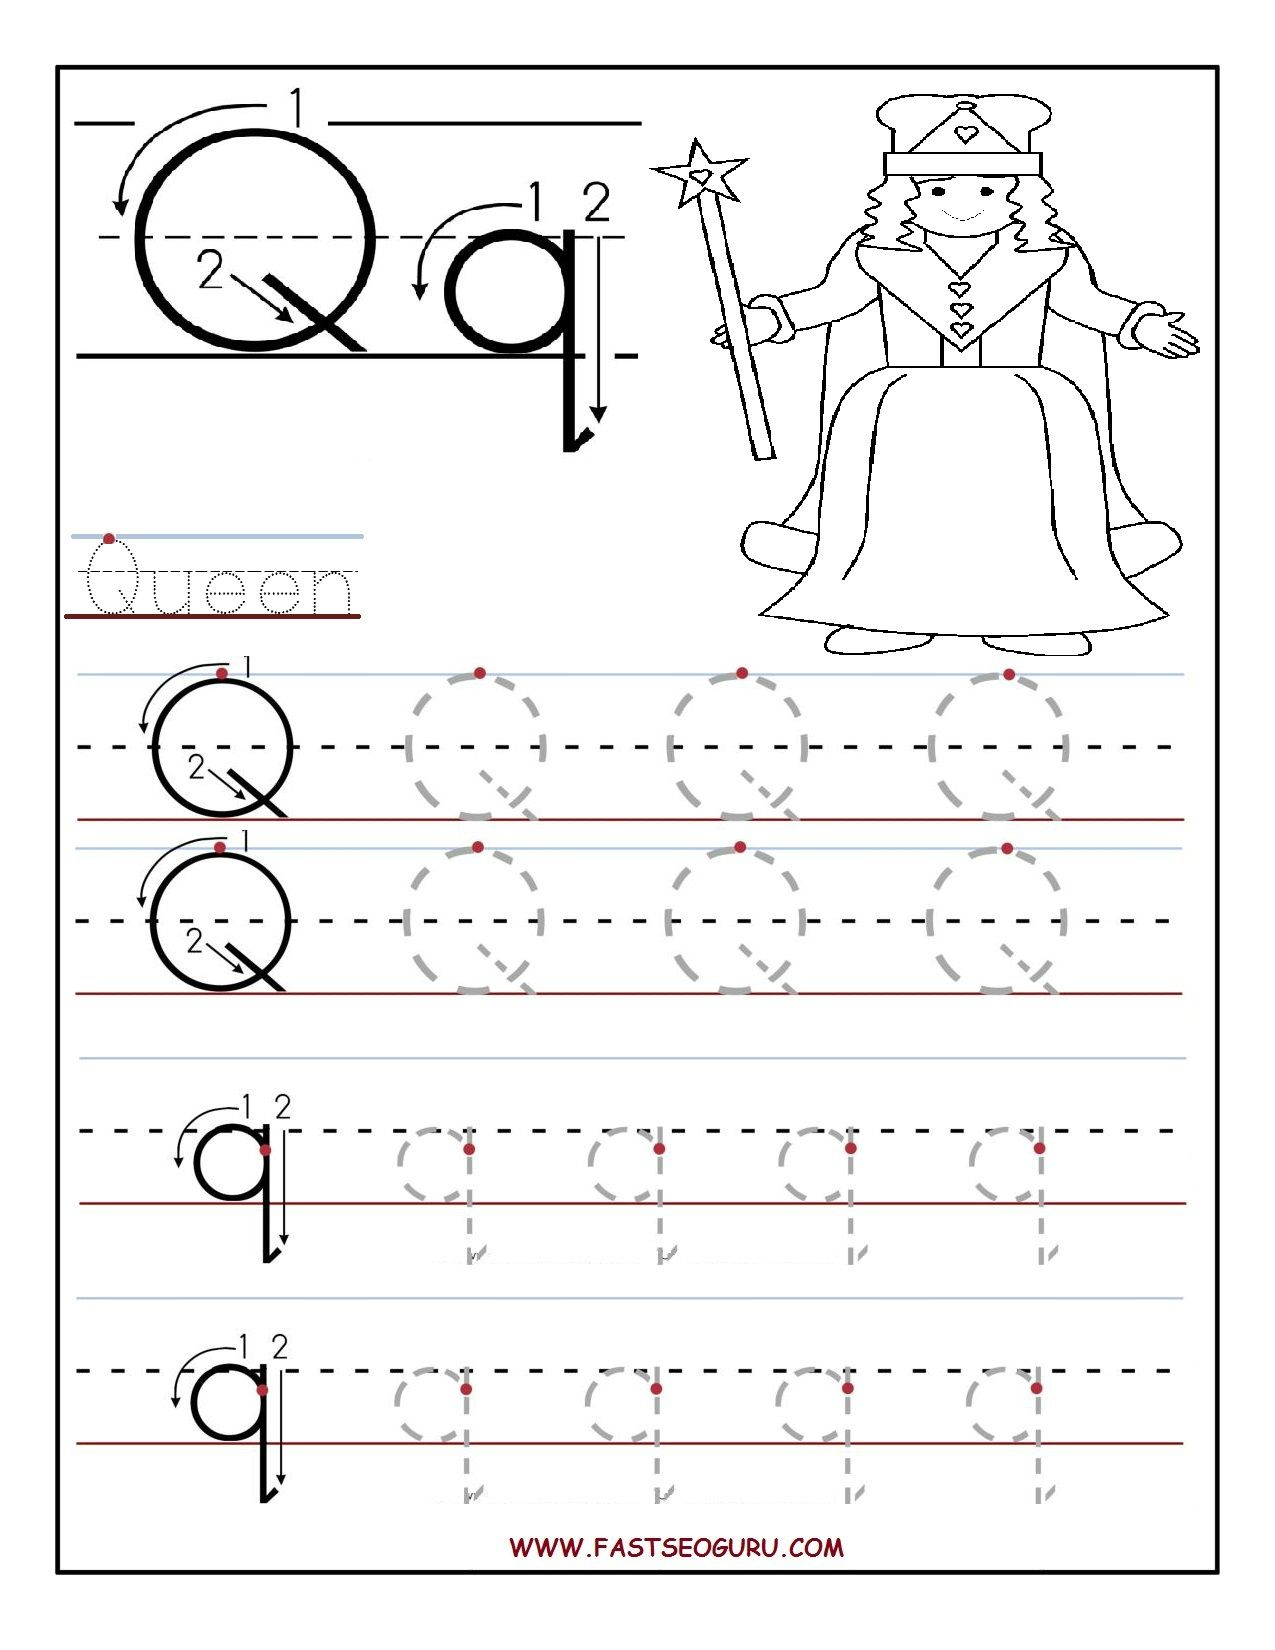 letter Q tracing worksheets for preschool - Google Search